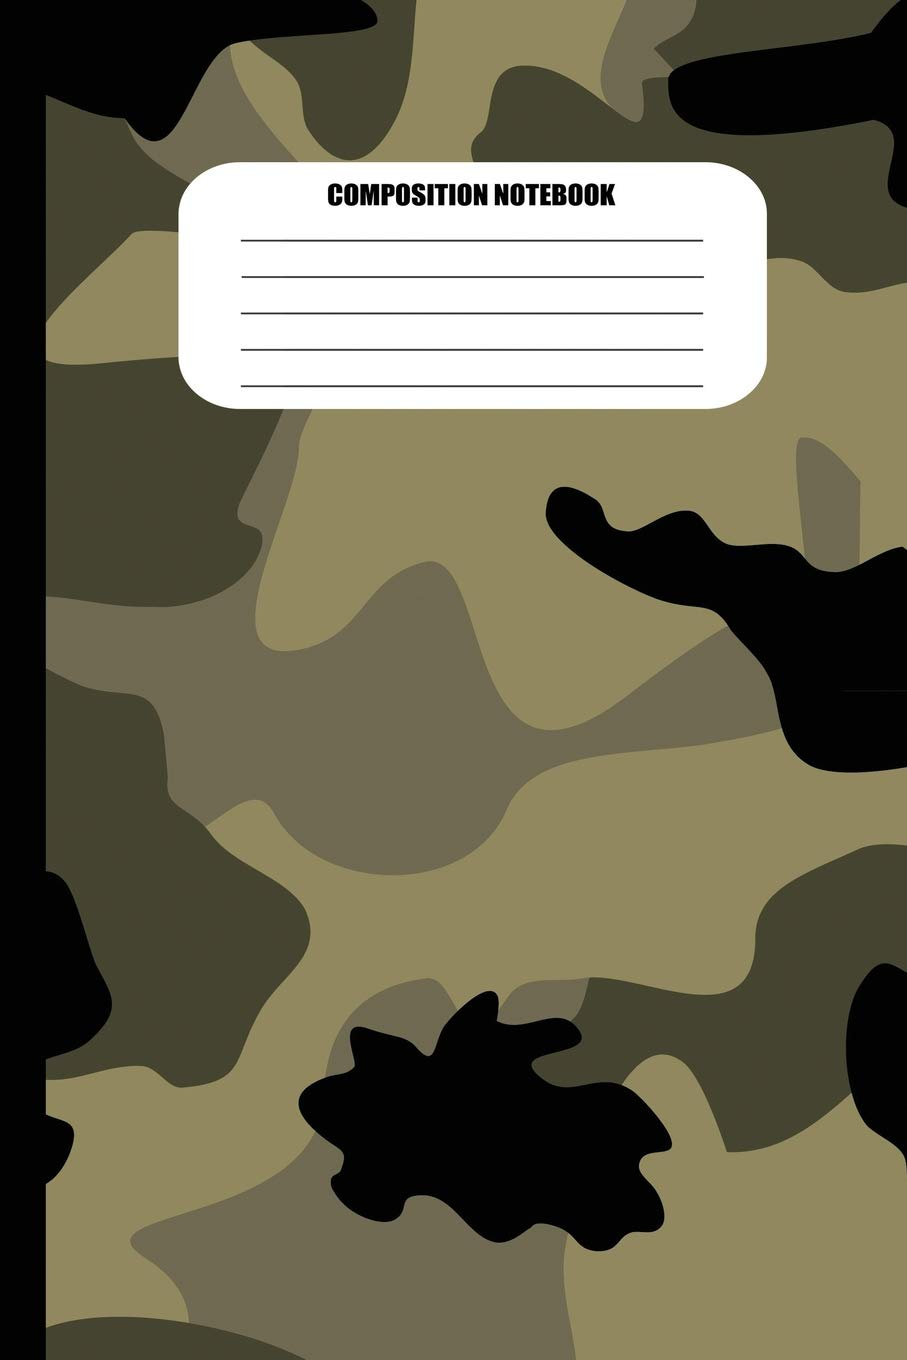 Amazon com: Composition Notebook: Camouflage (Military